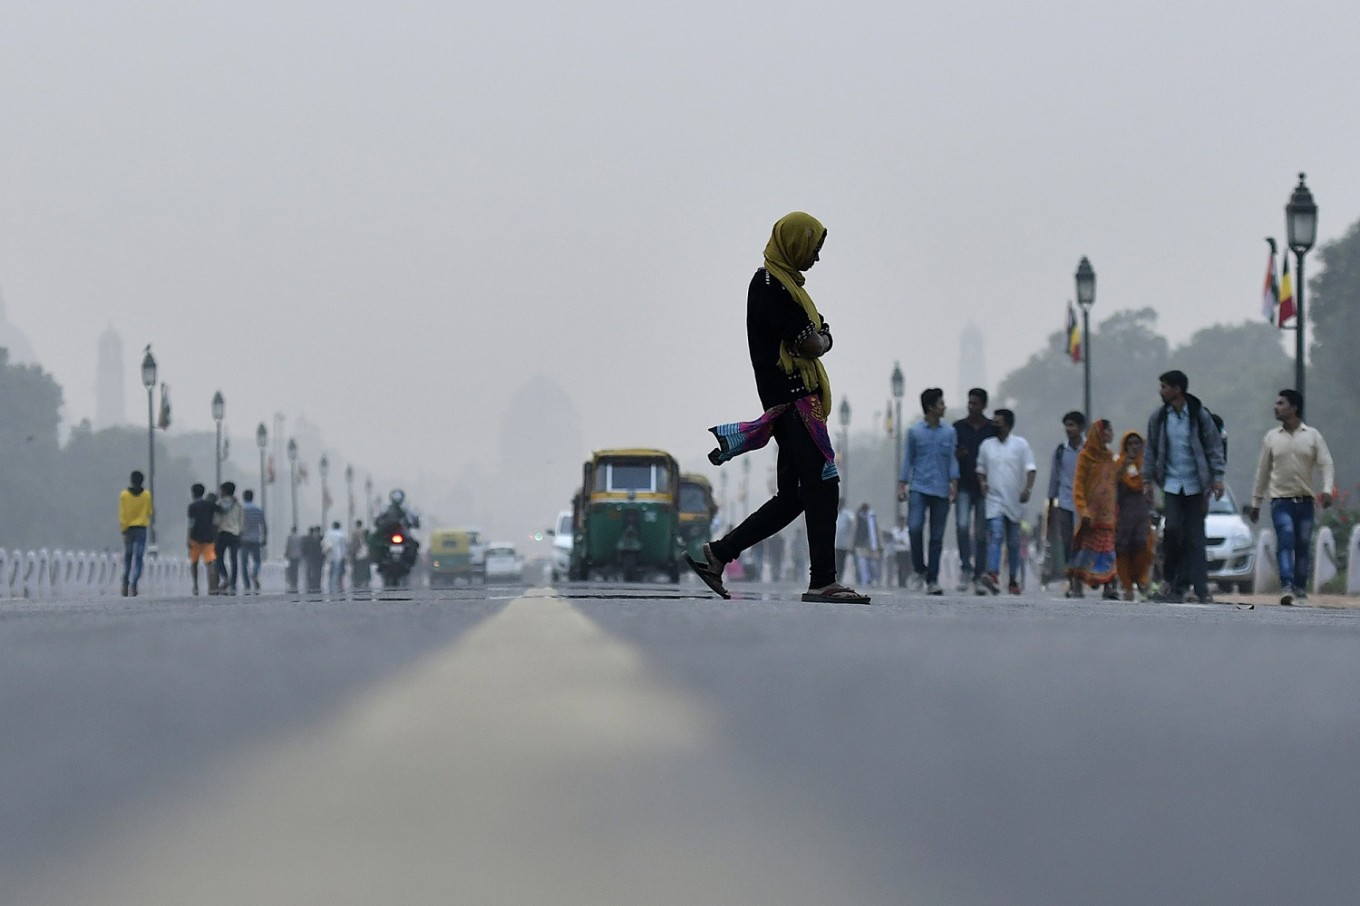 World's fastest growing economy has the world's most toxic air